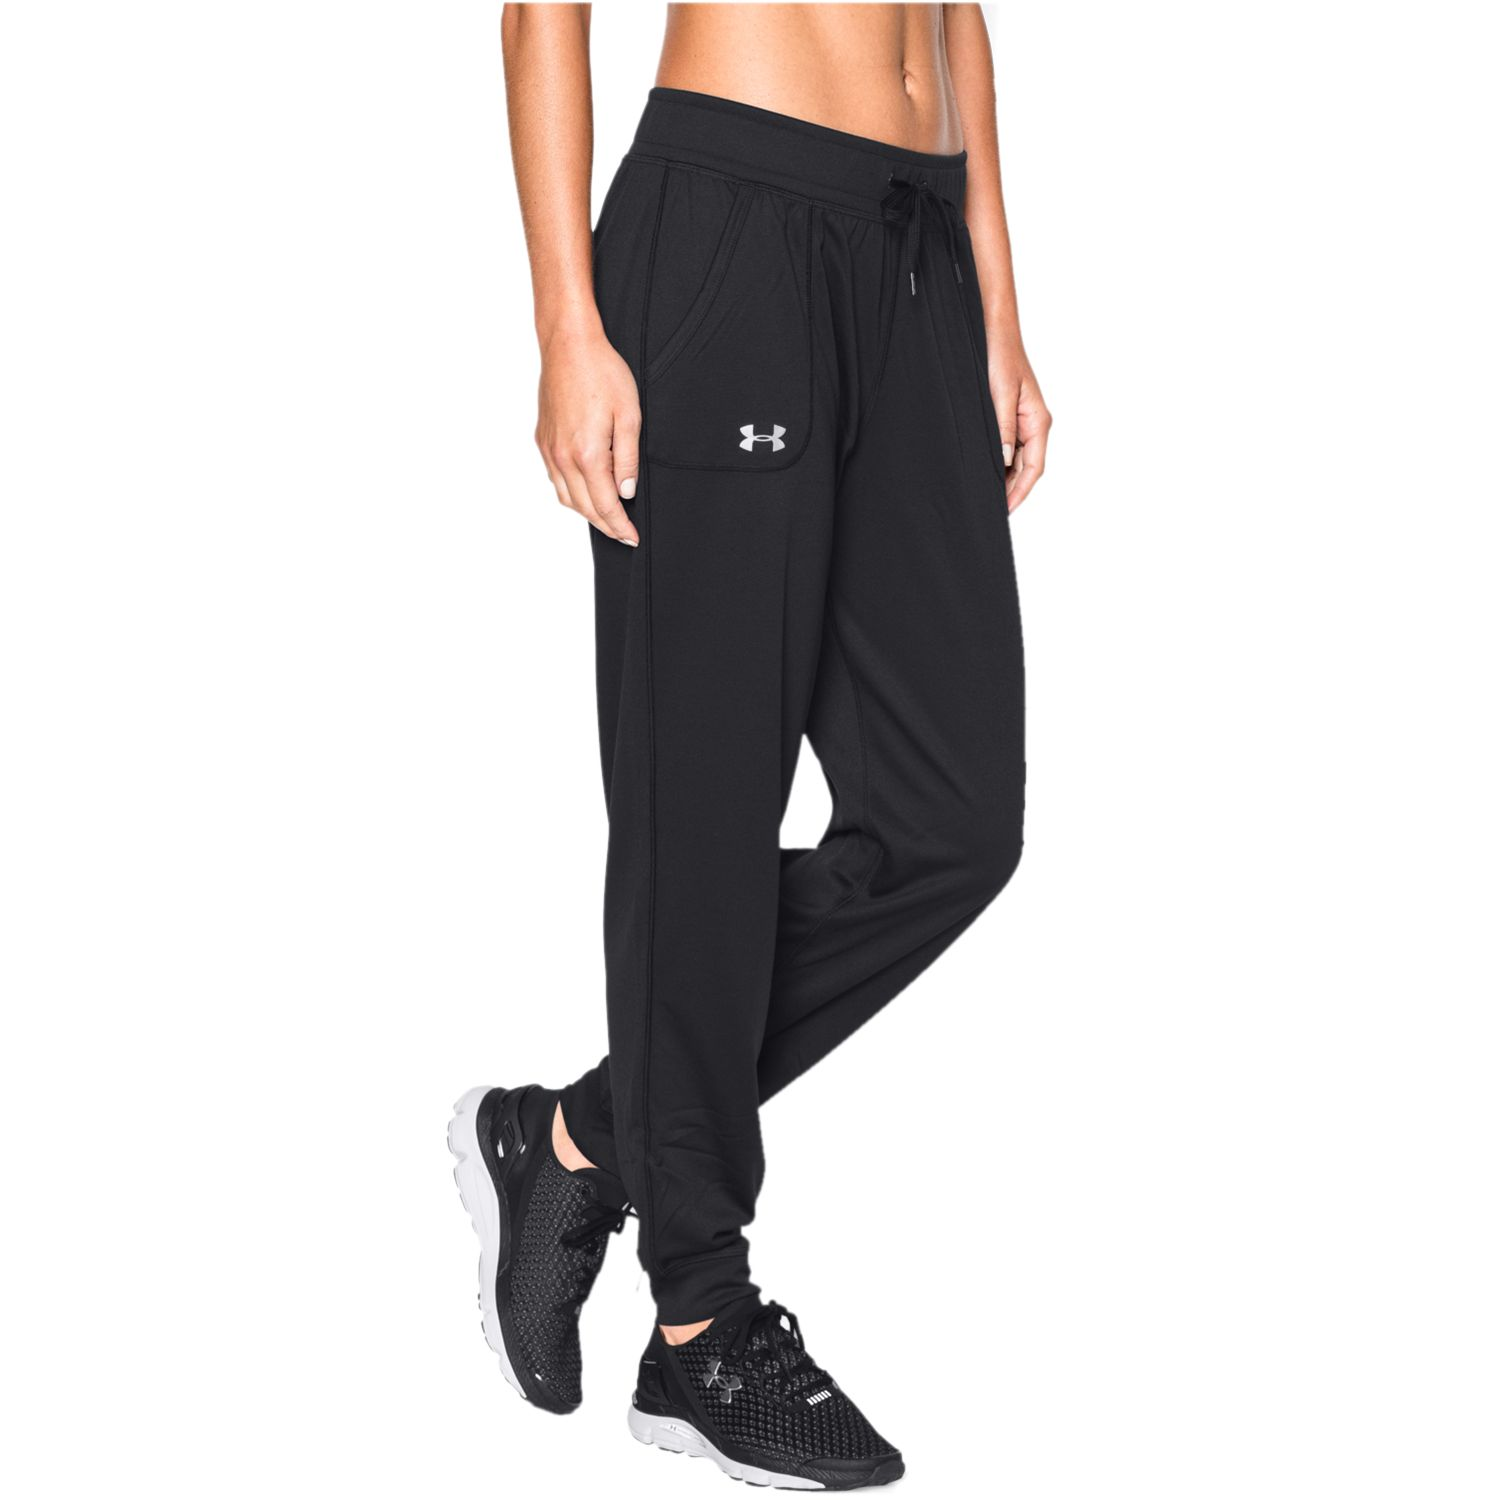 Women\u0027s Under Armour Tech Pants. Black. sale